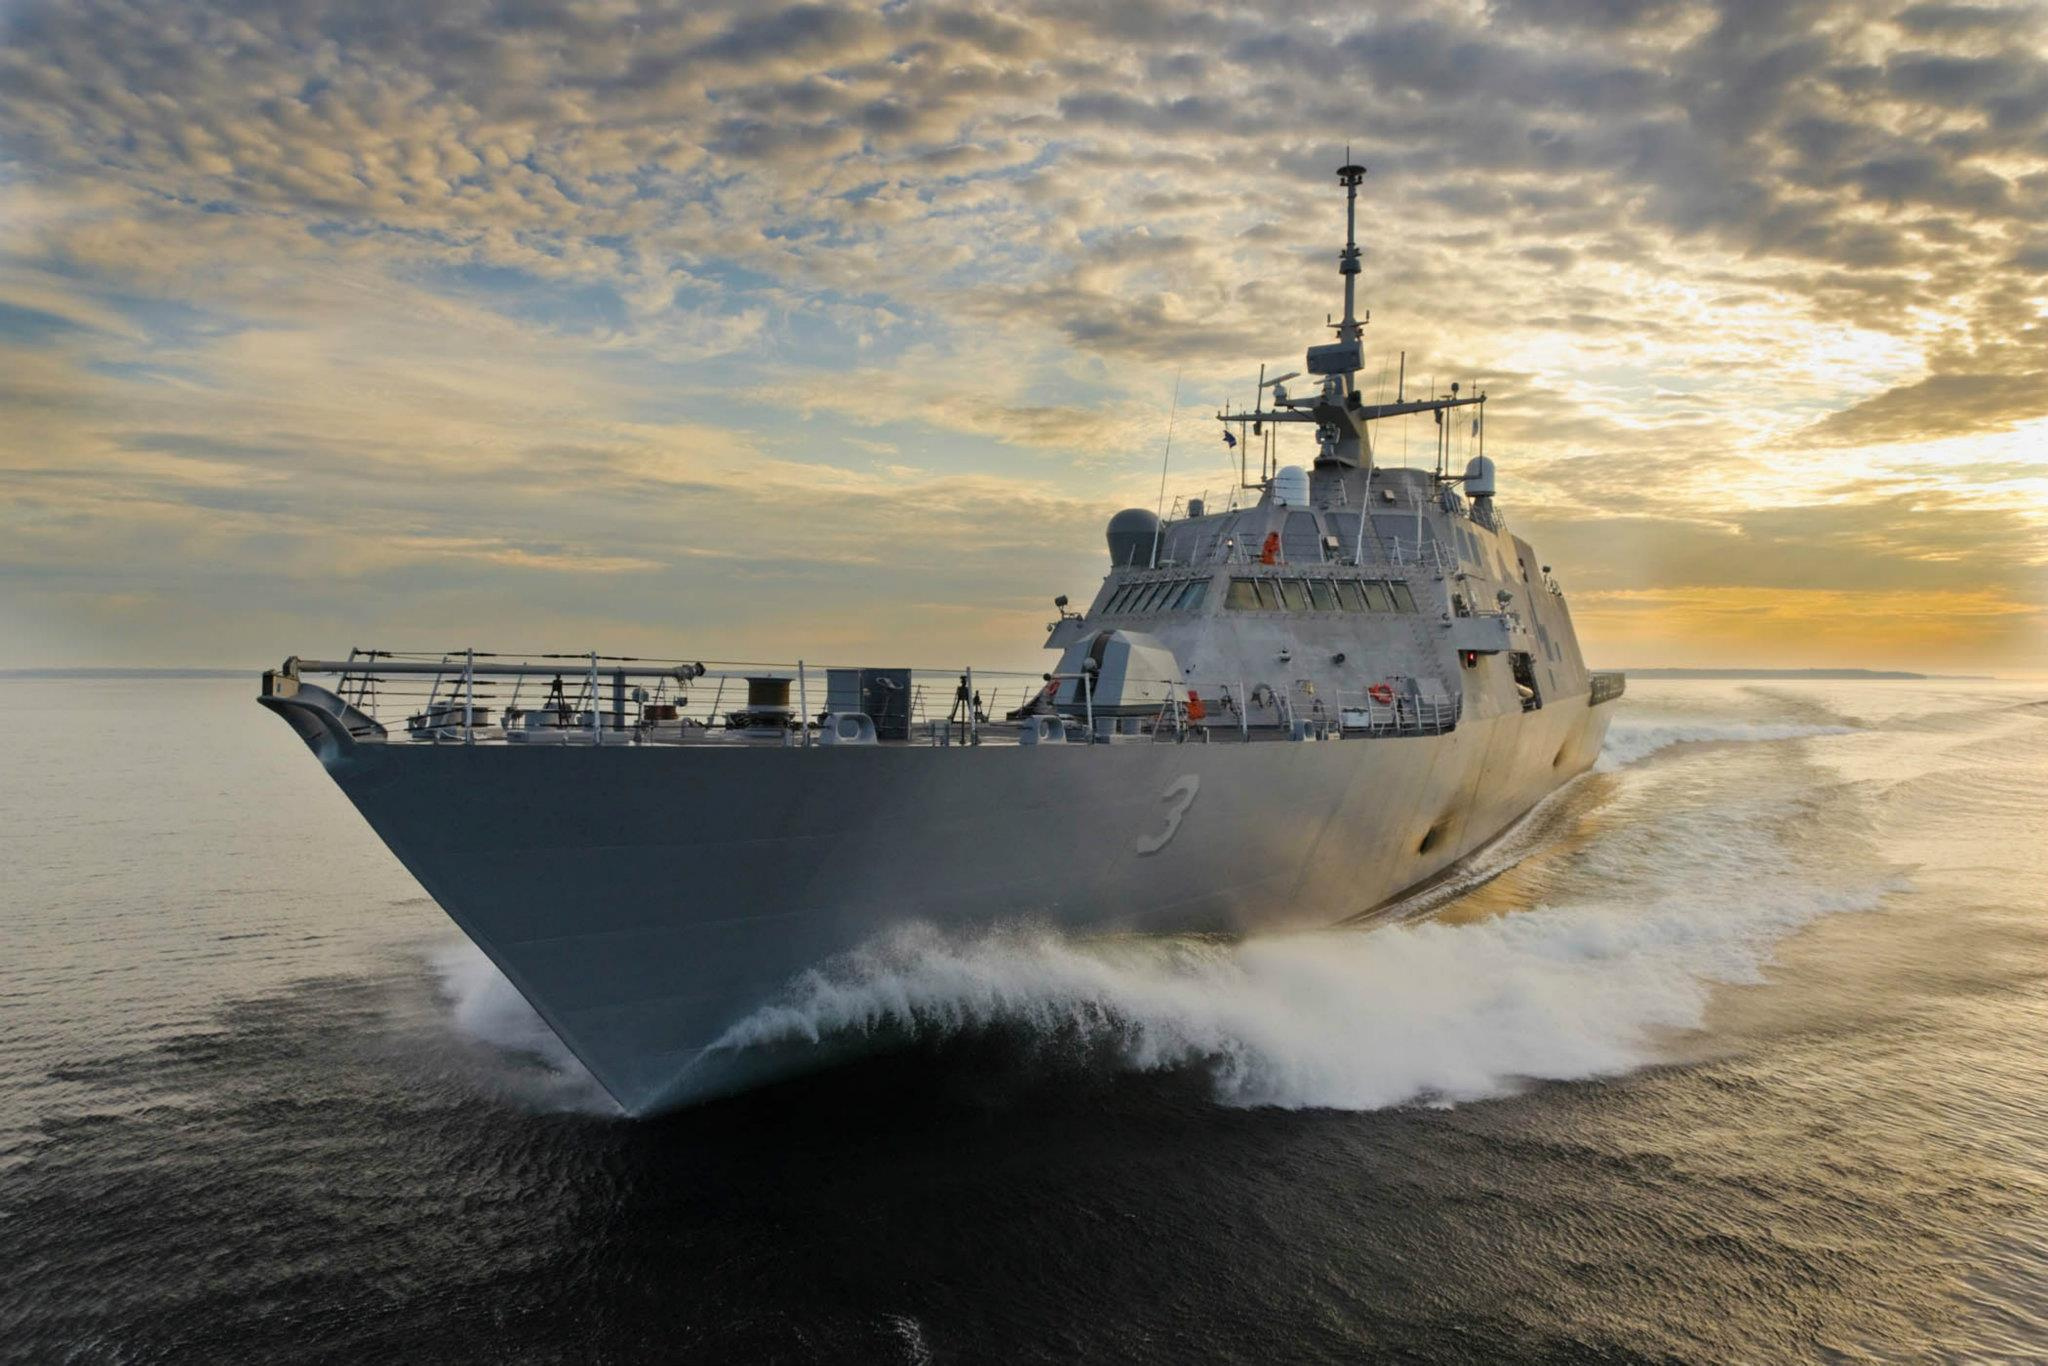 USS FORT WORTH LCS-3 Bild: Lockheed Martin